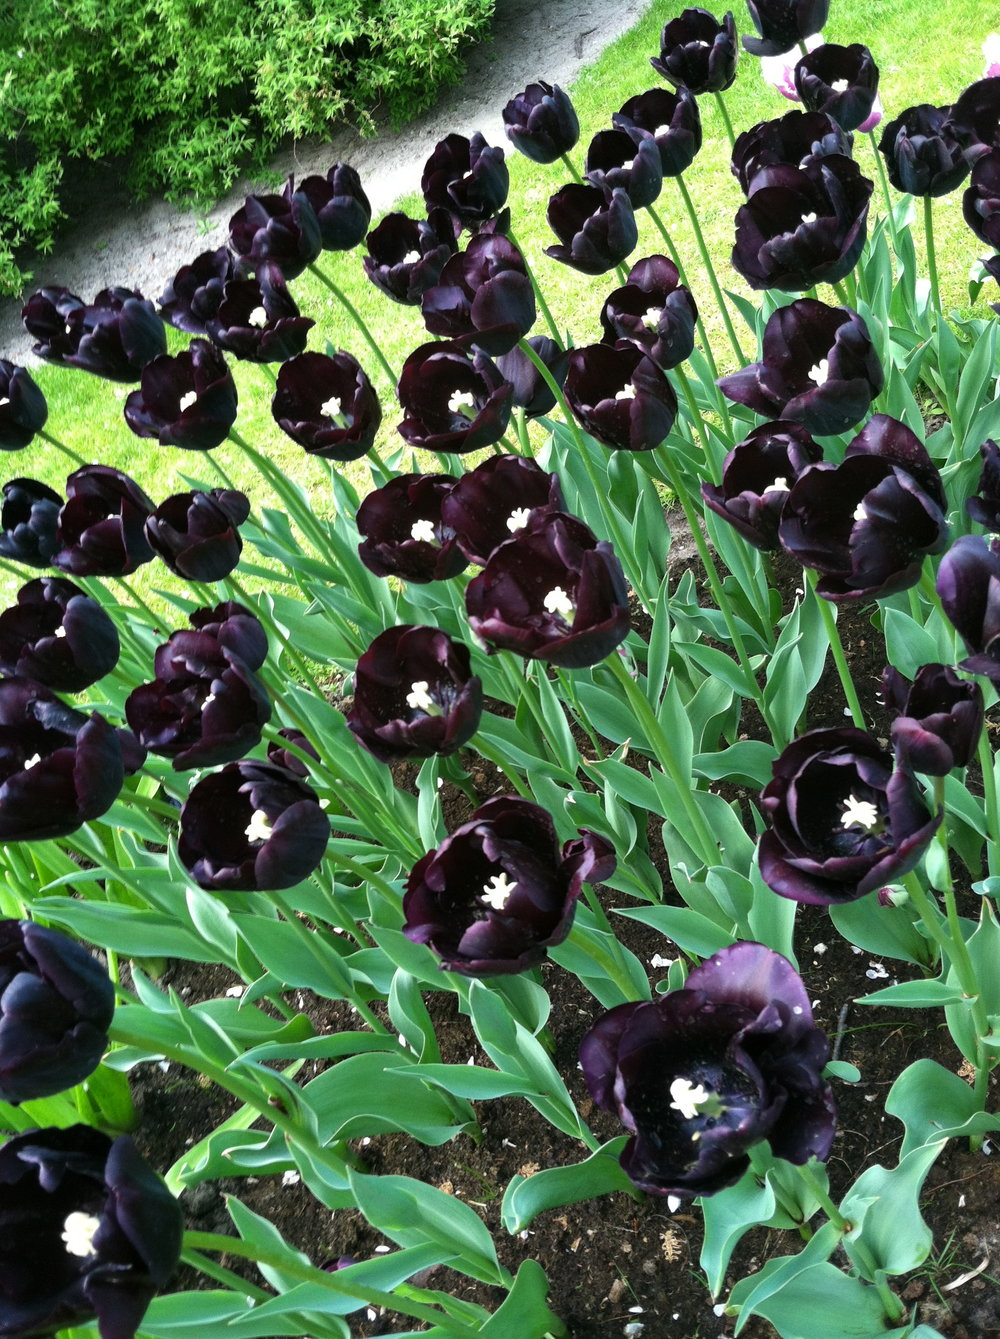 Black tulips. Like, soy moody.